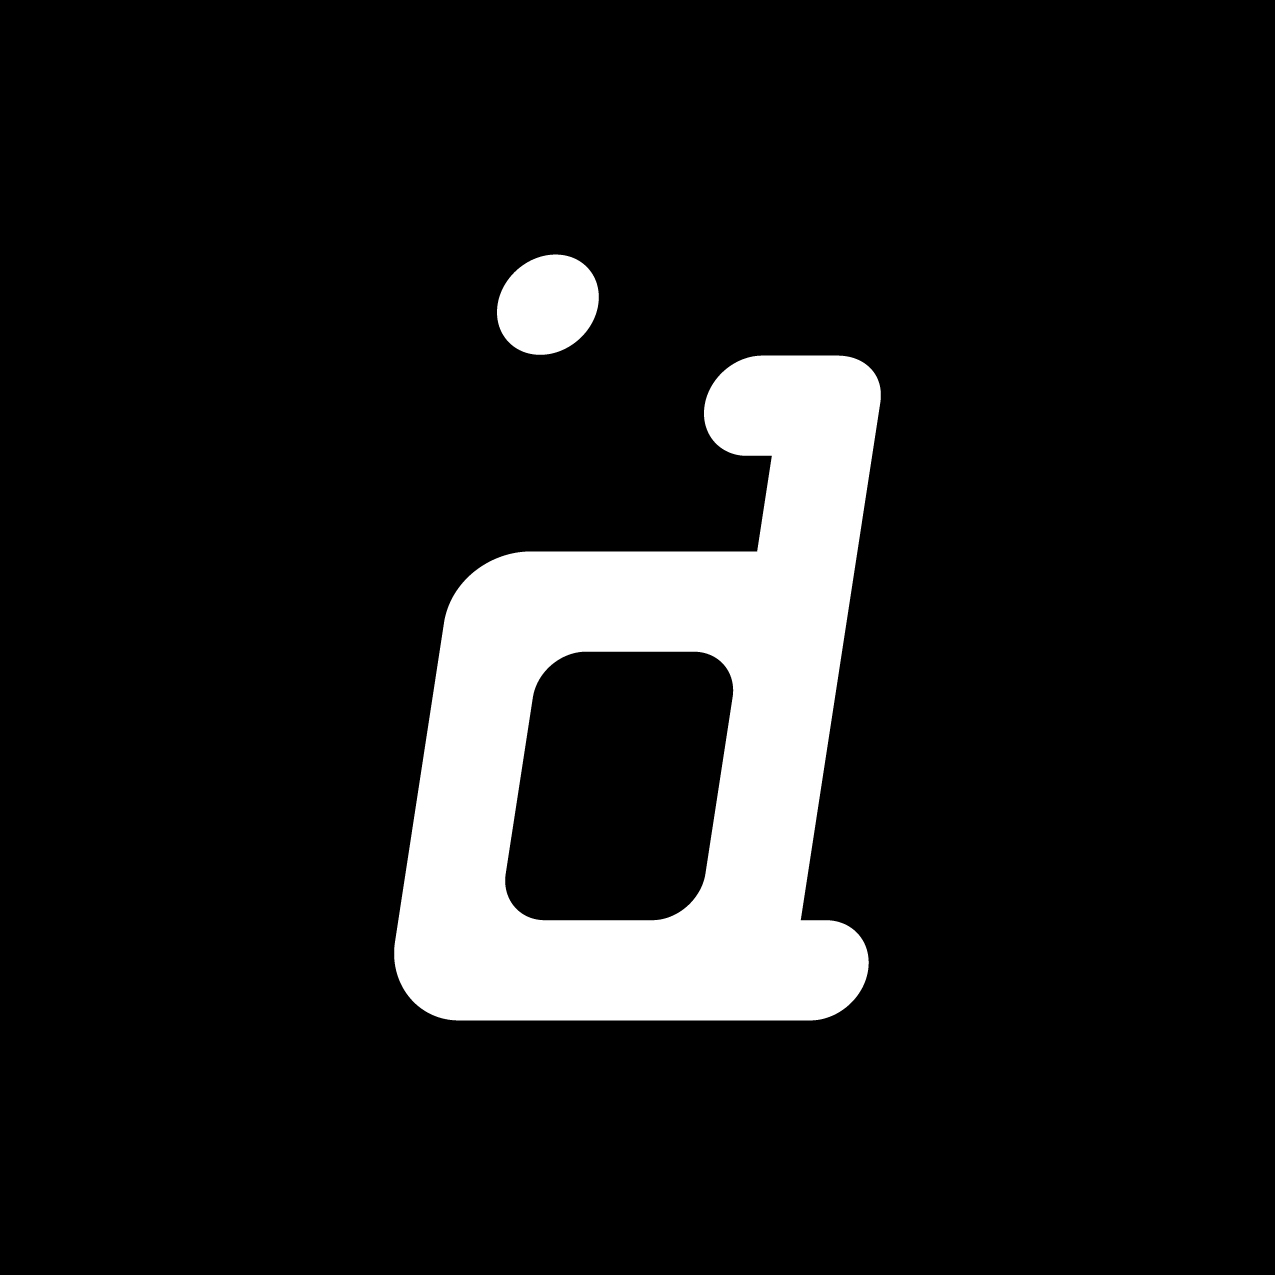 Letter D8 design by Furia